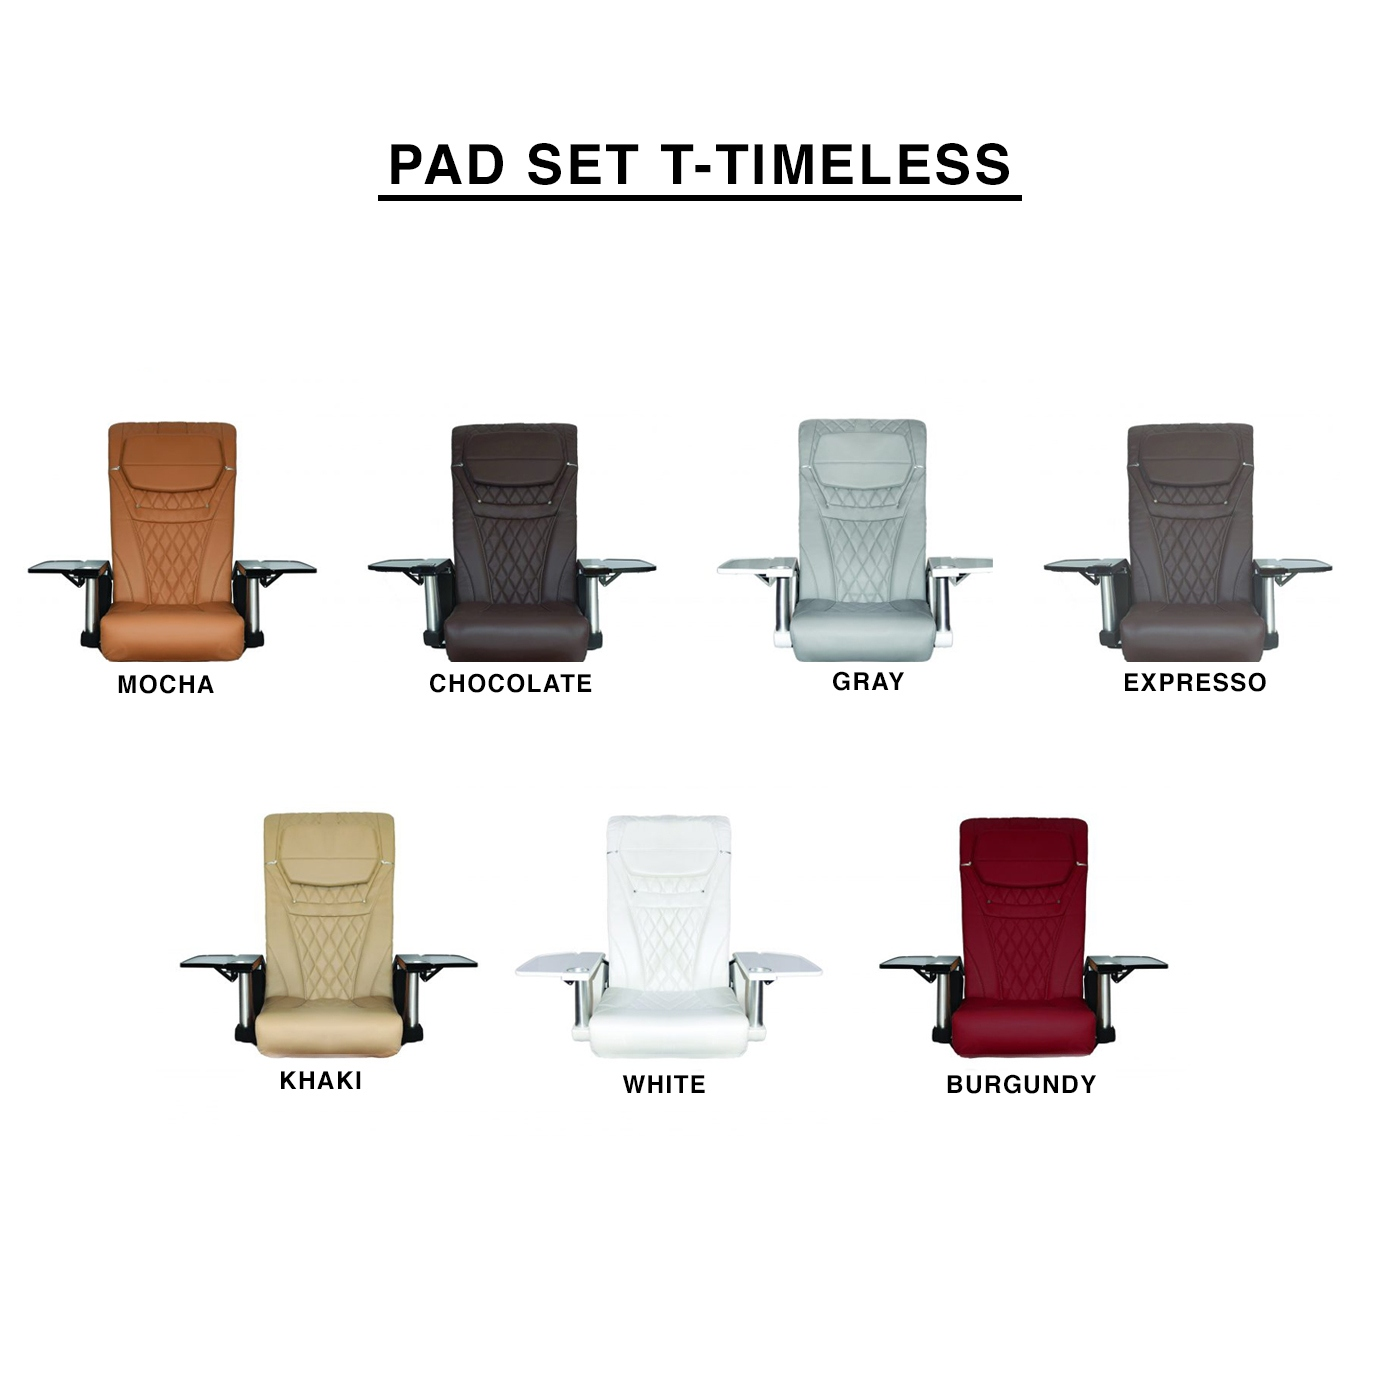 Pad Set T-Timeless